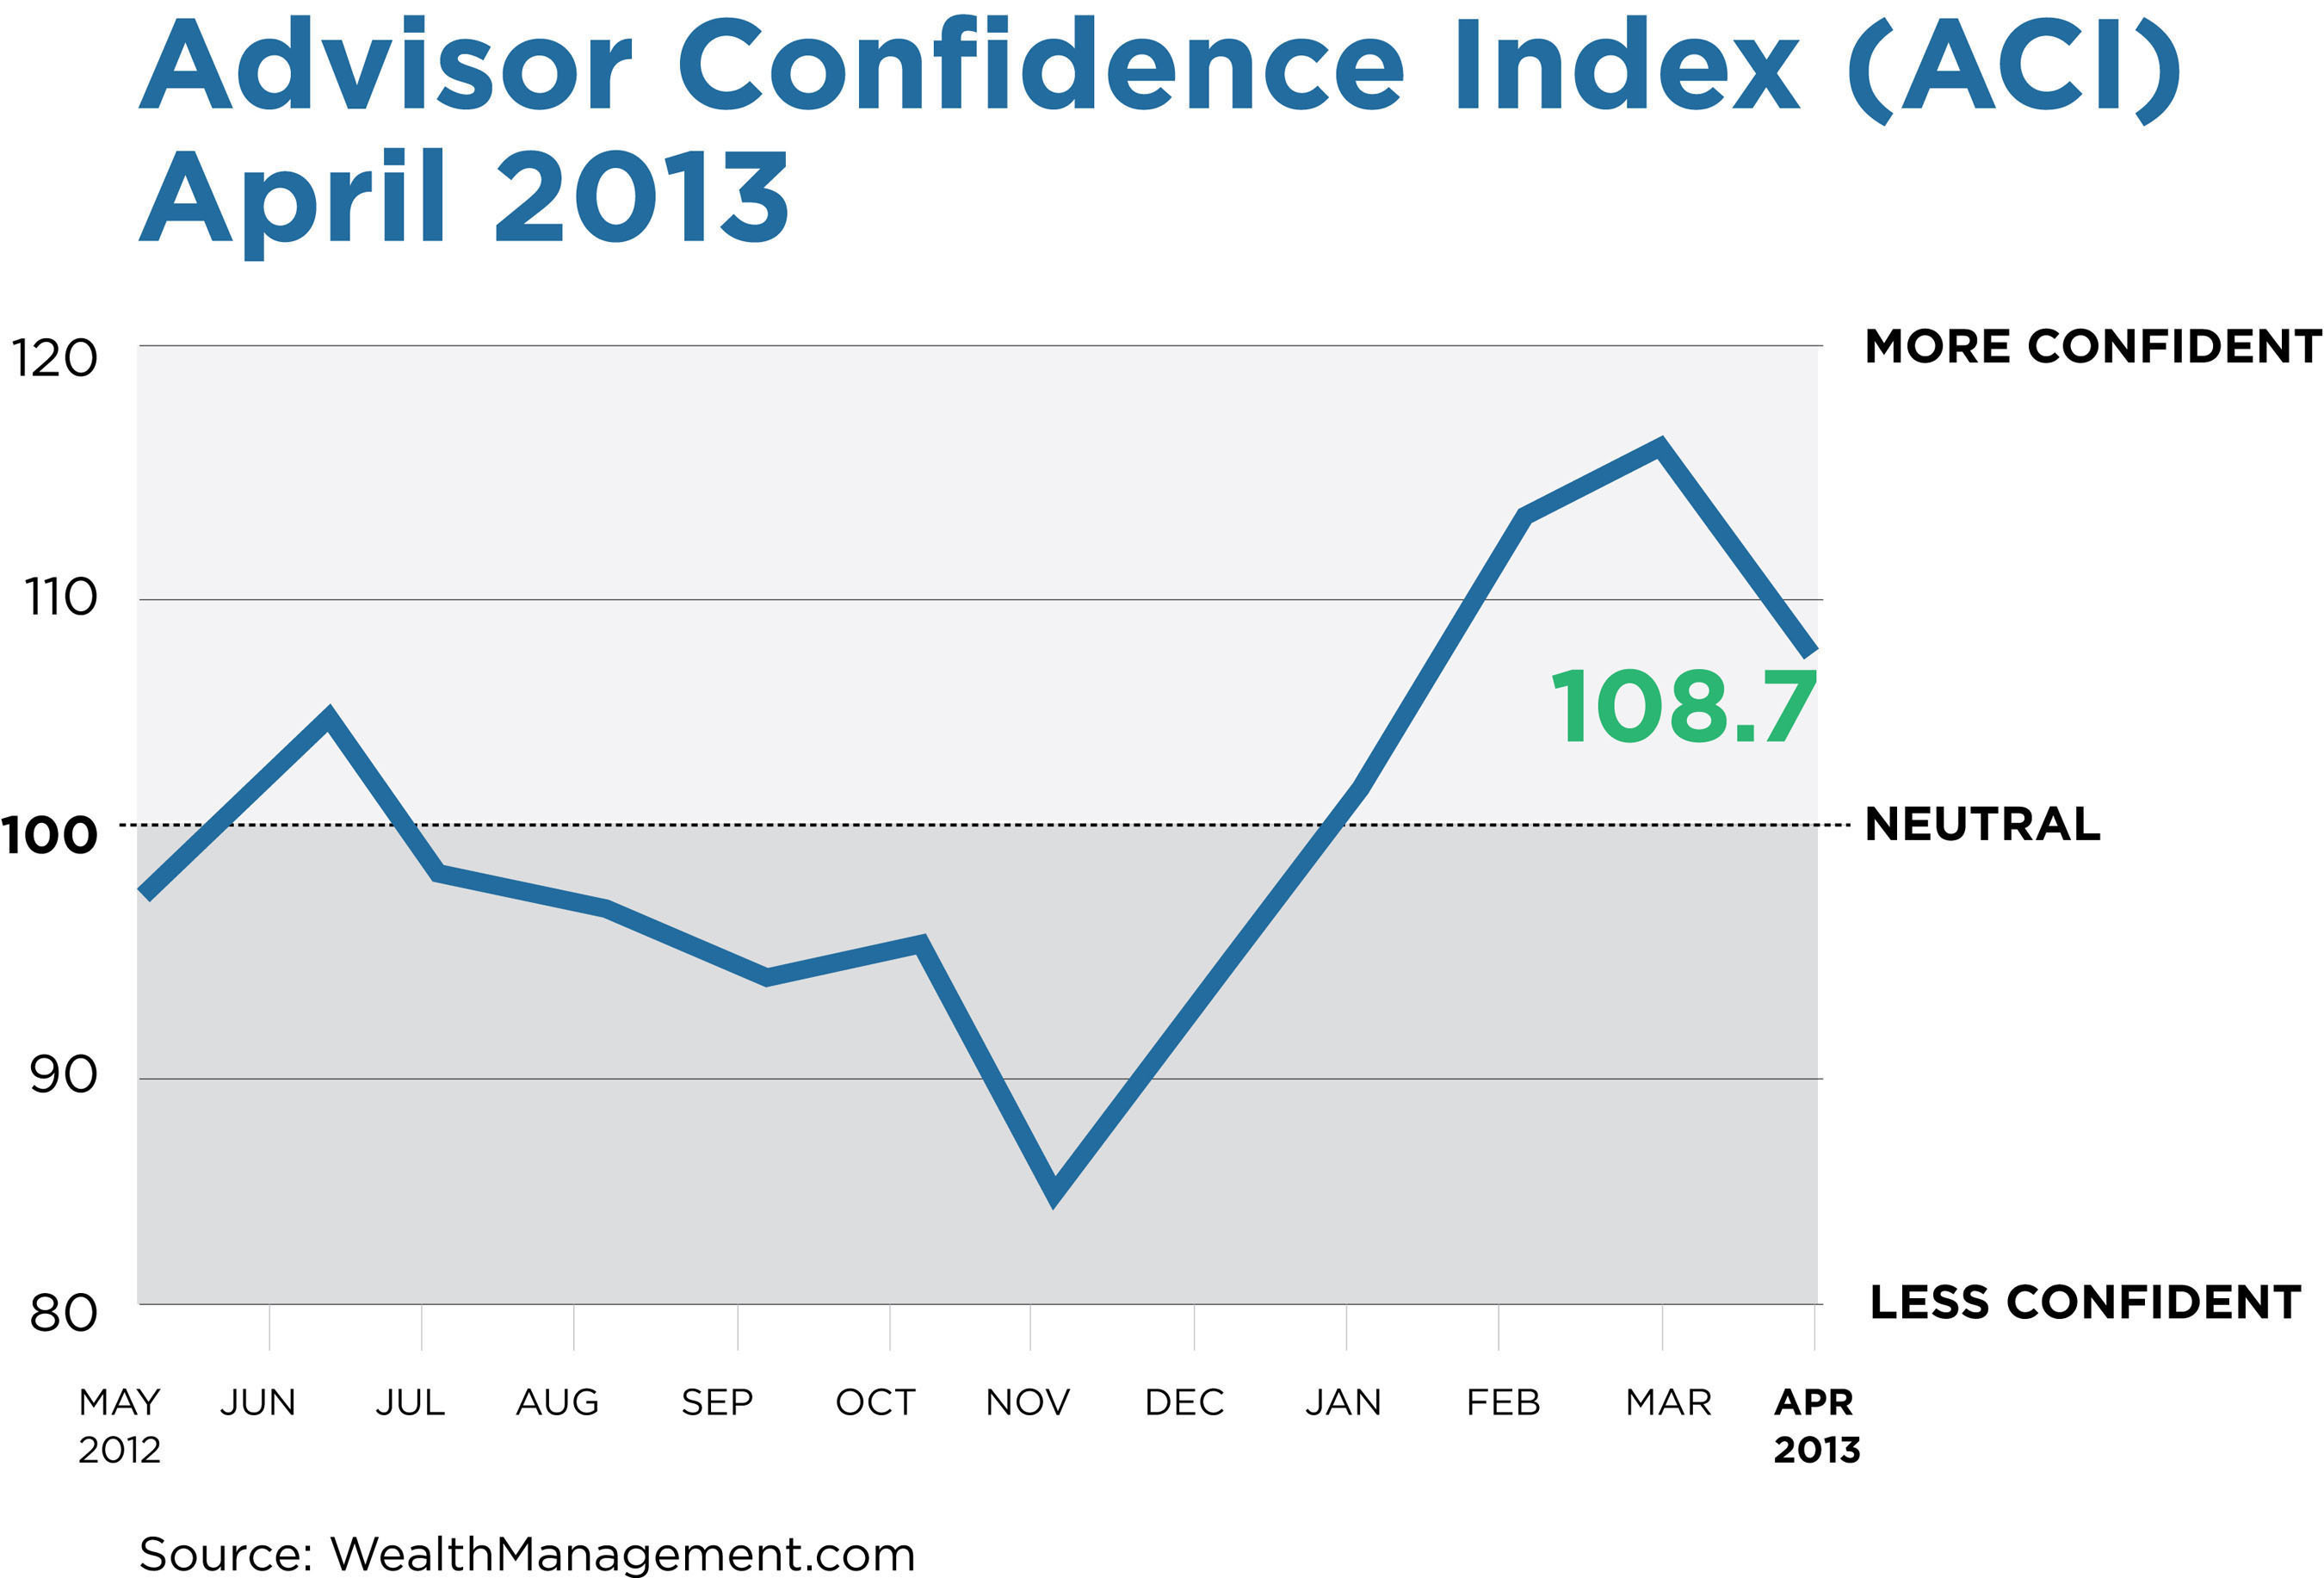 Advisor Confidence Plunges in April